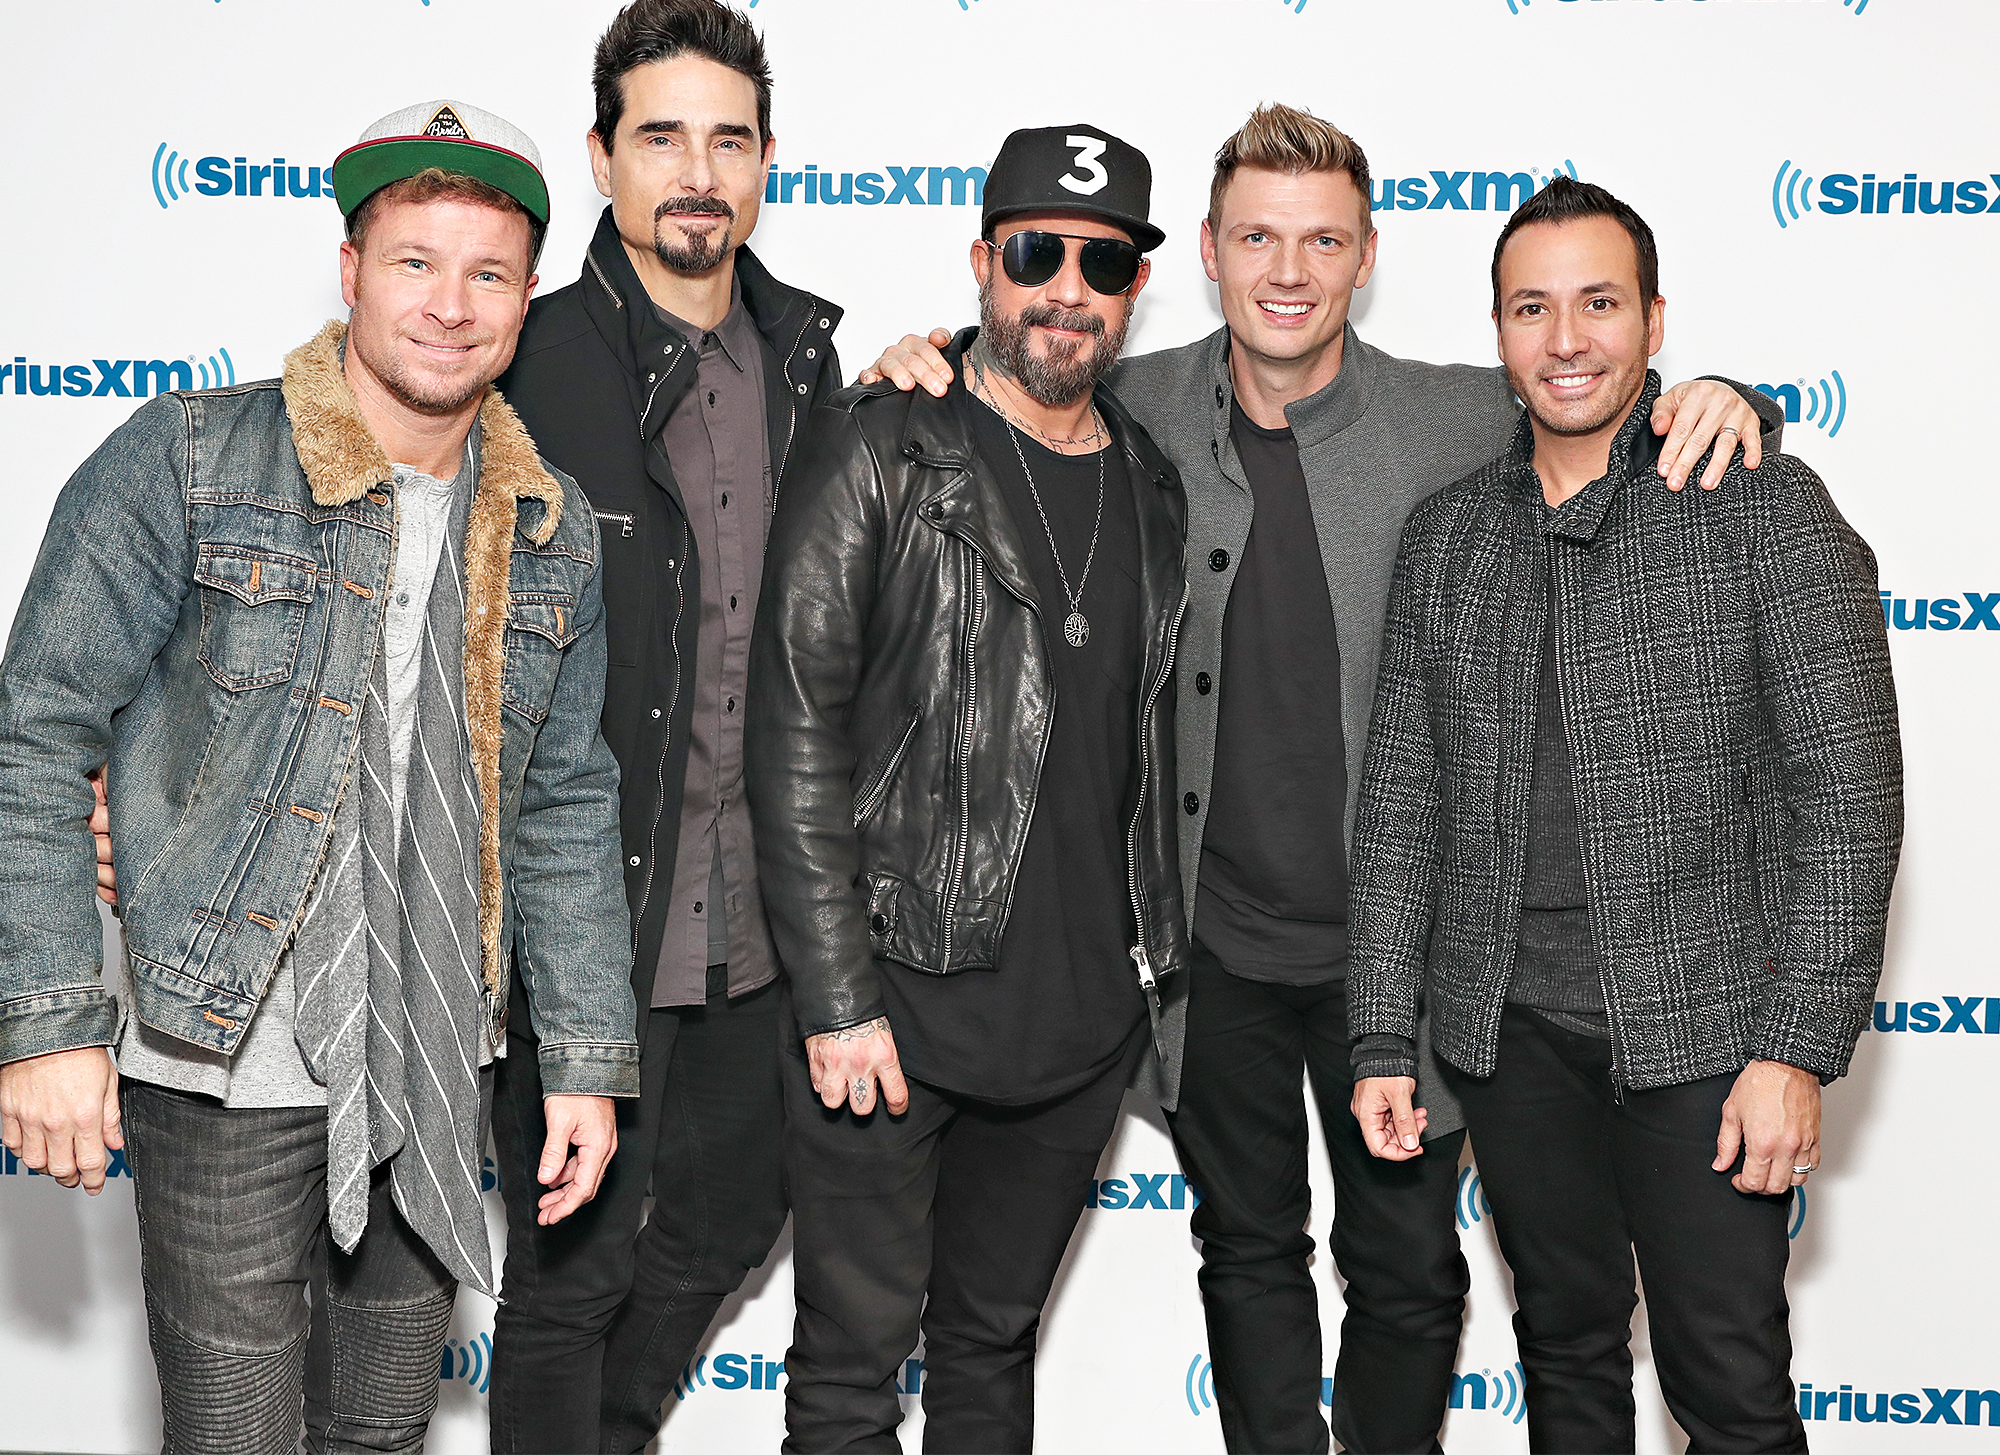 Backstreet Boys Perform Live On SiriusXM Hits 1 At The SiriusXM Studios In New York City